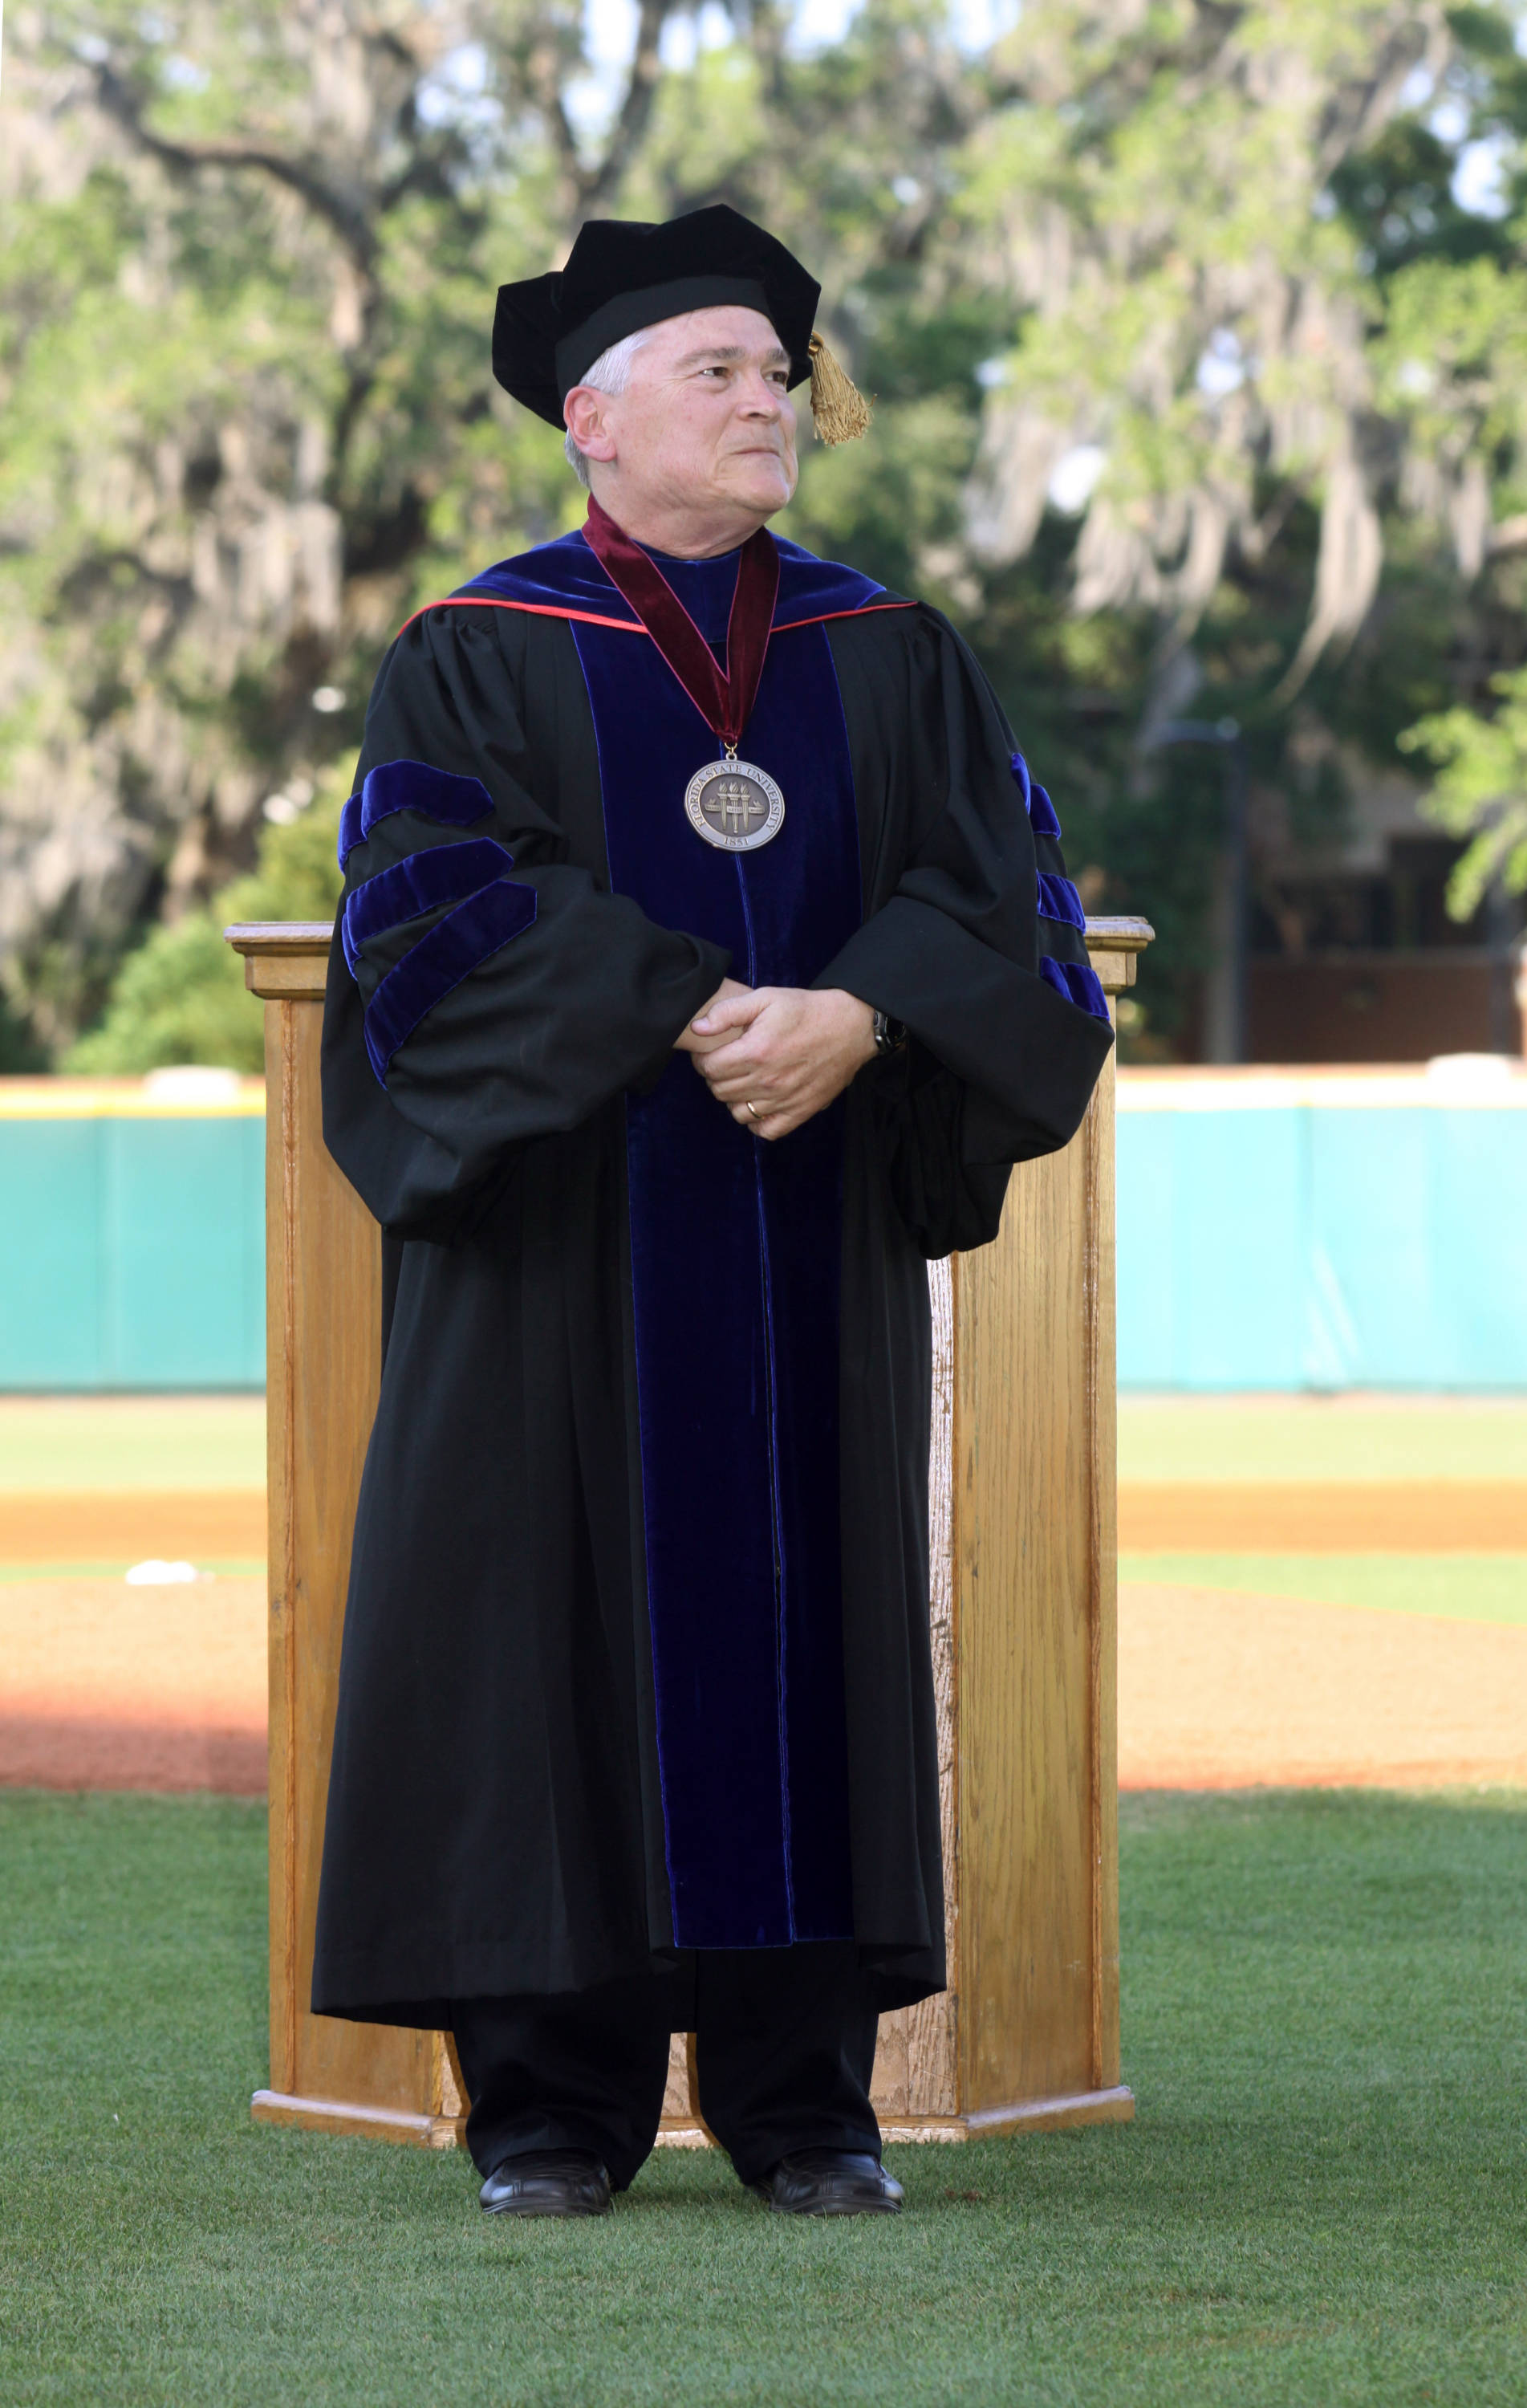 2011 Spring Graduation Ceremony held at Dick Howser Stadium to honor the graduating baseball seniors. FSU President Dr. Eric J. Barron